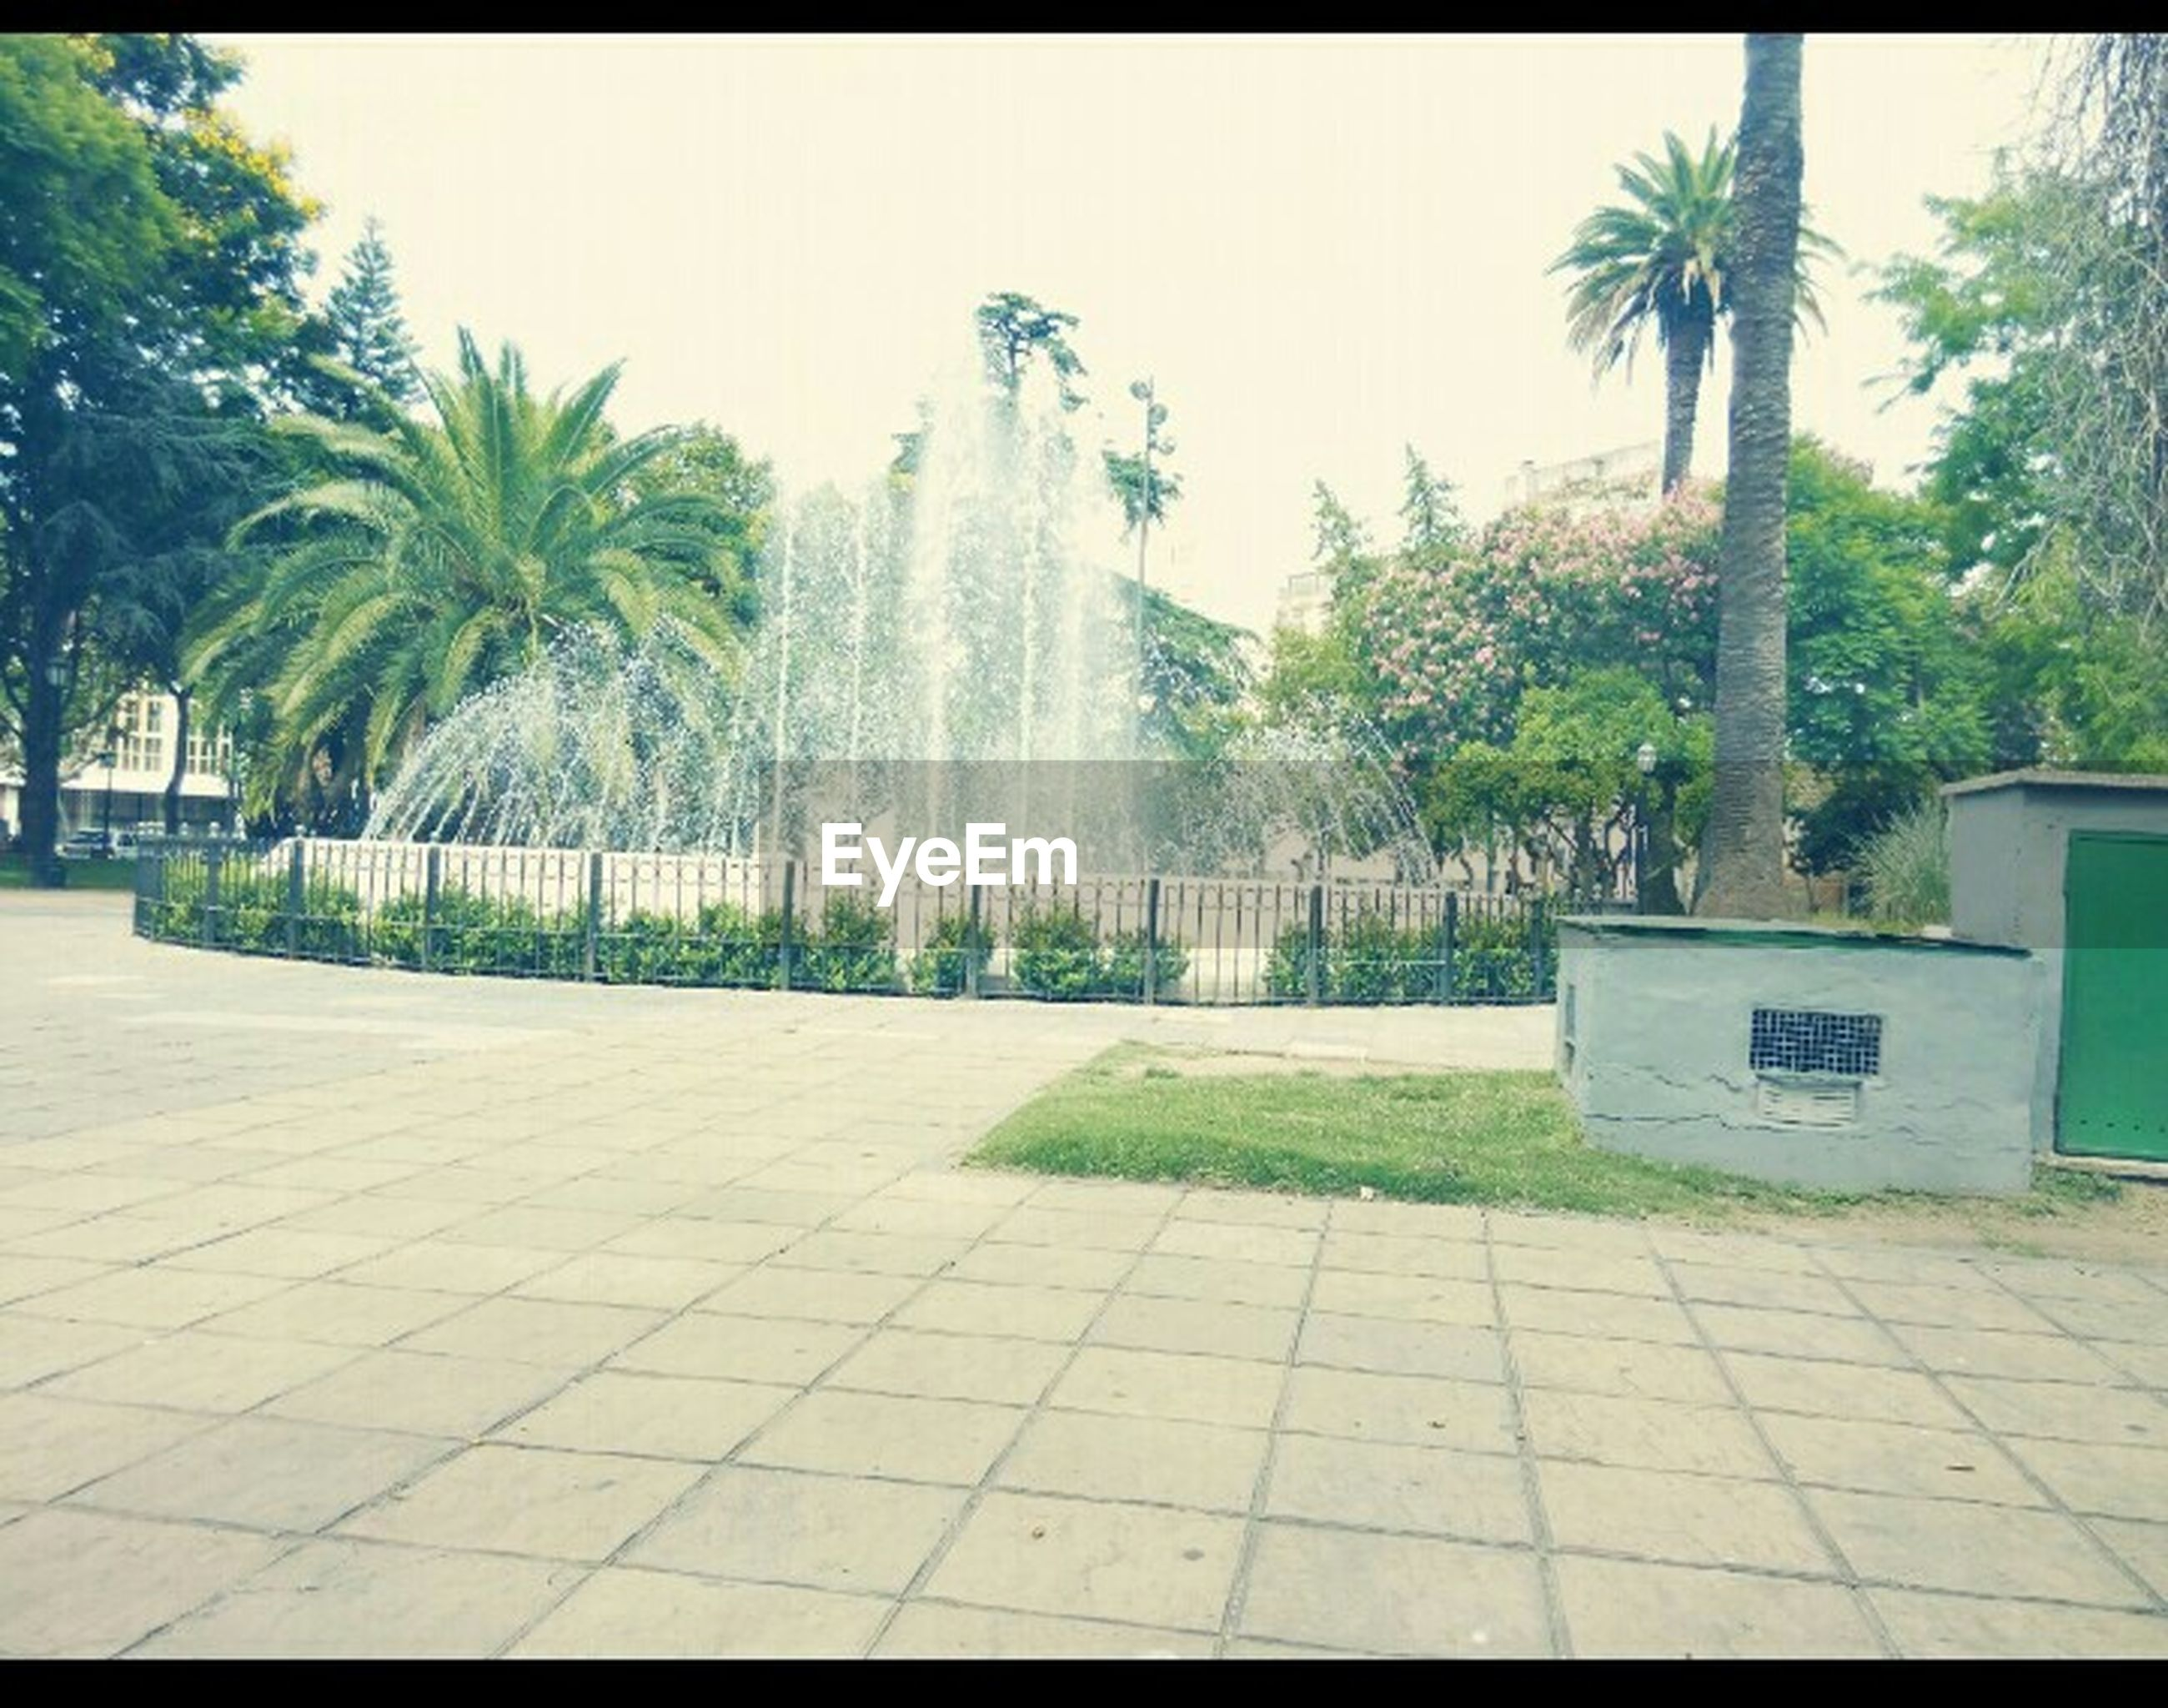 tree, palm tree, growth, sunlight, green color, plant, footpath, built structure, park - man made space, building exterior, architecture, fountain, day, incidental people, formal garden, nature, shadow, outdoors, paving stone, sidewalk